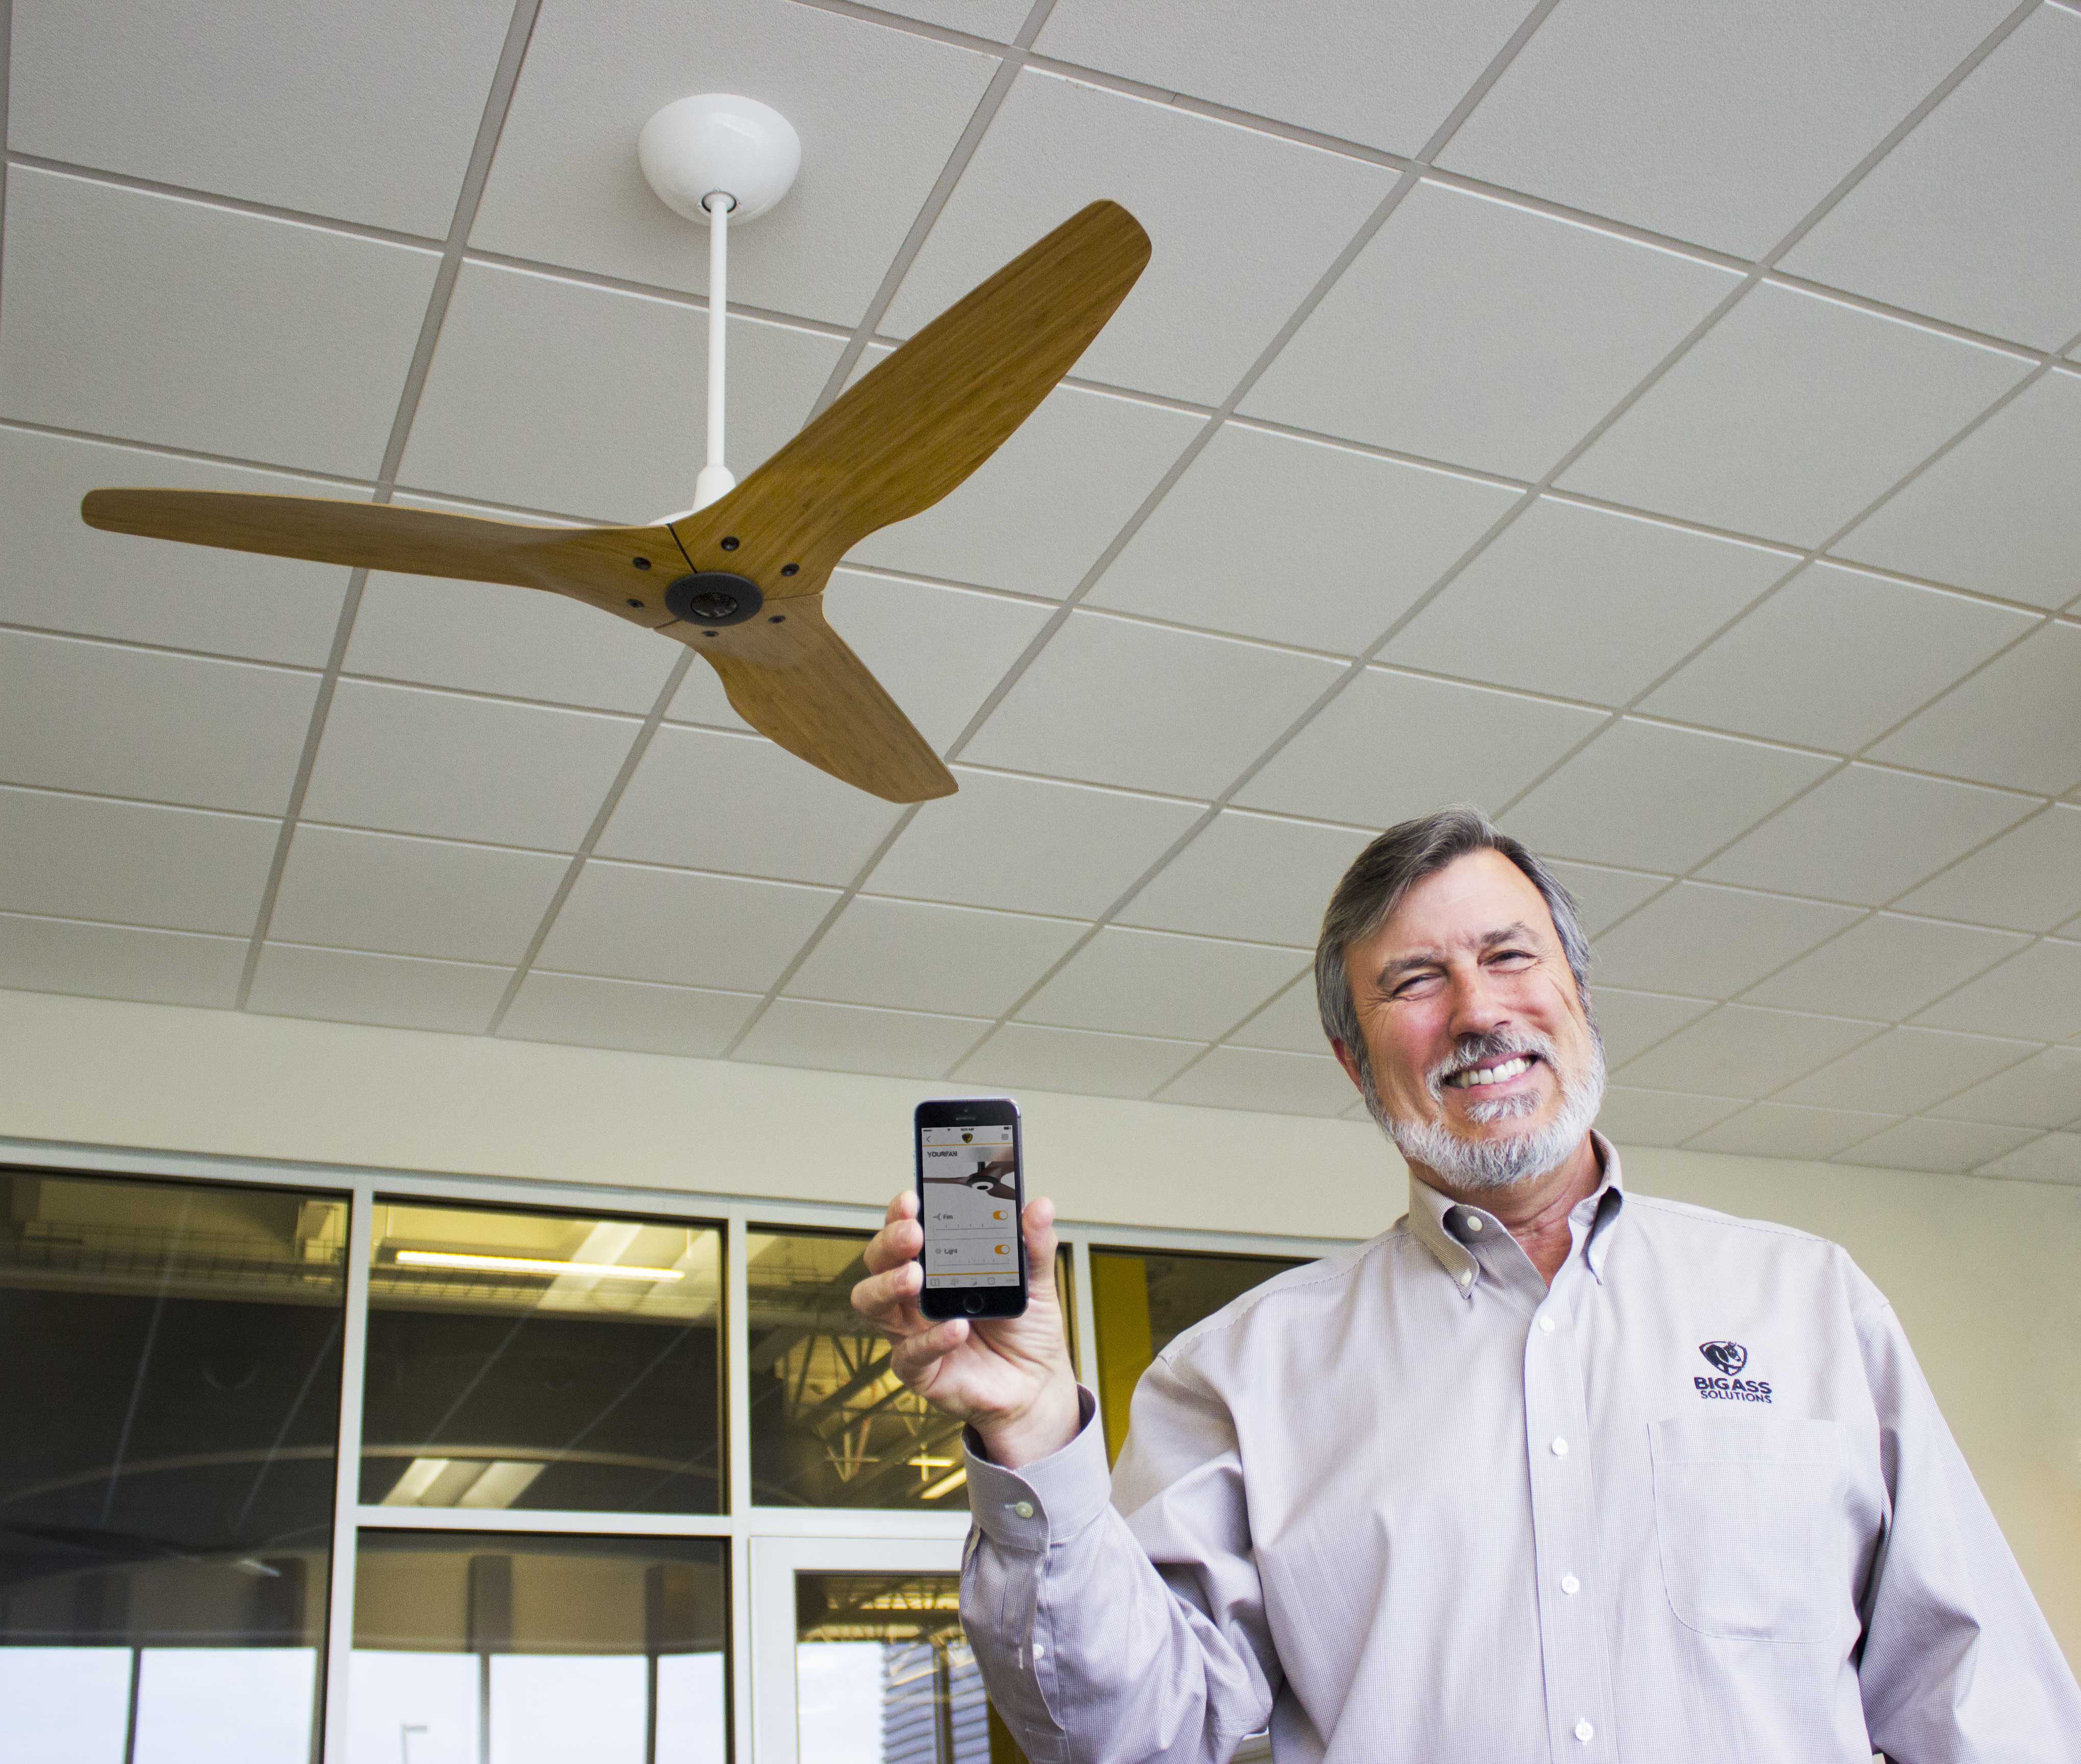 Big Ass Fans Founder and CEO Carey Smith  shows off the SenseME app and smart Haiku ceiling fan.